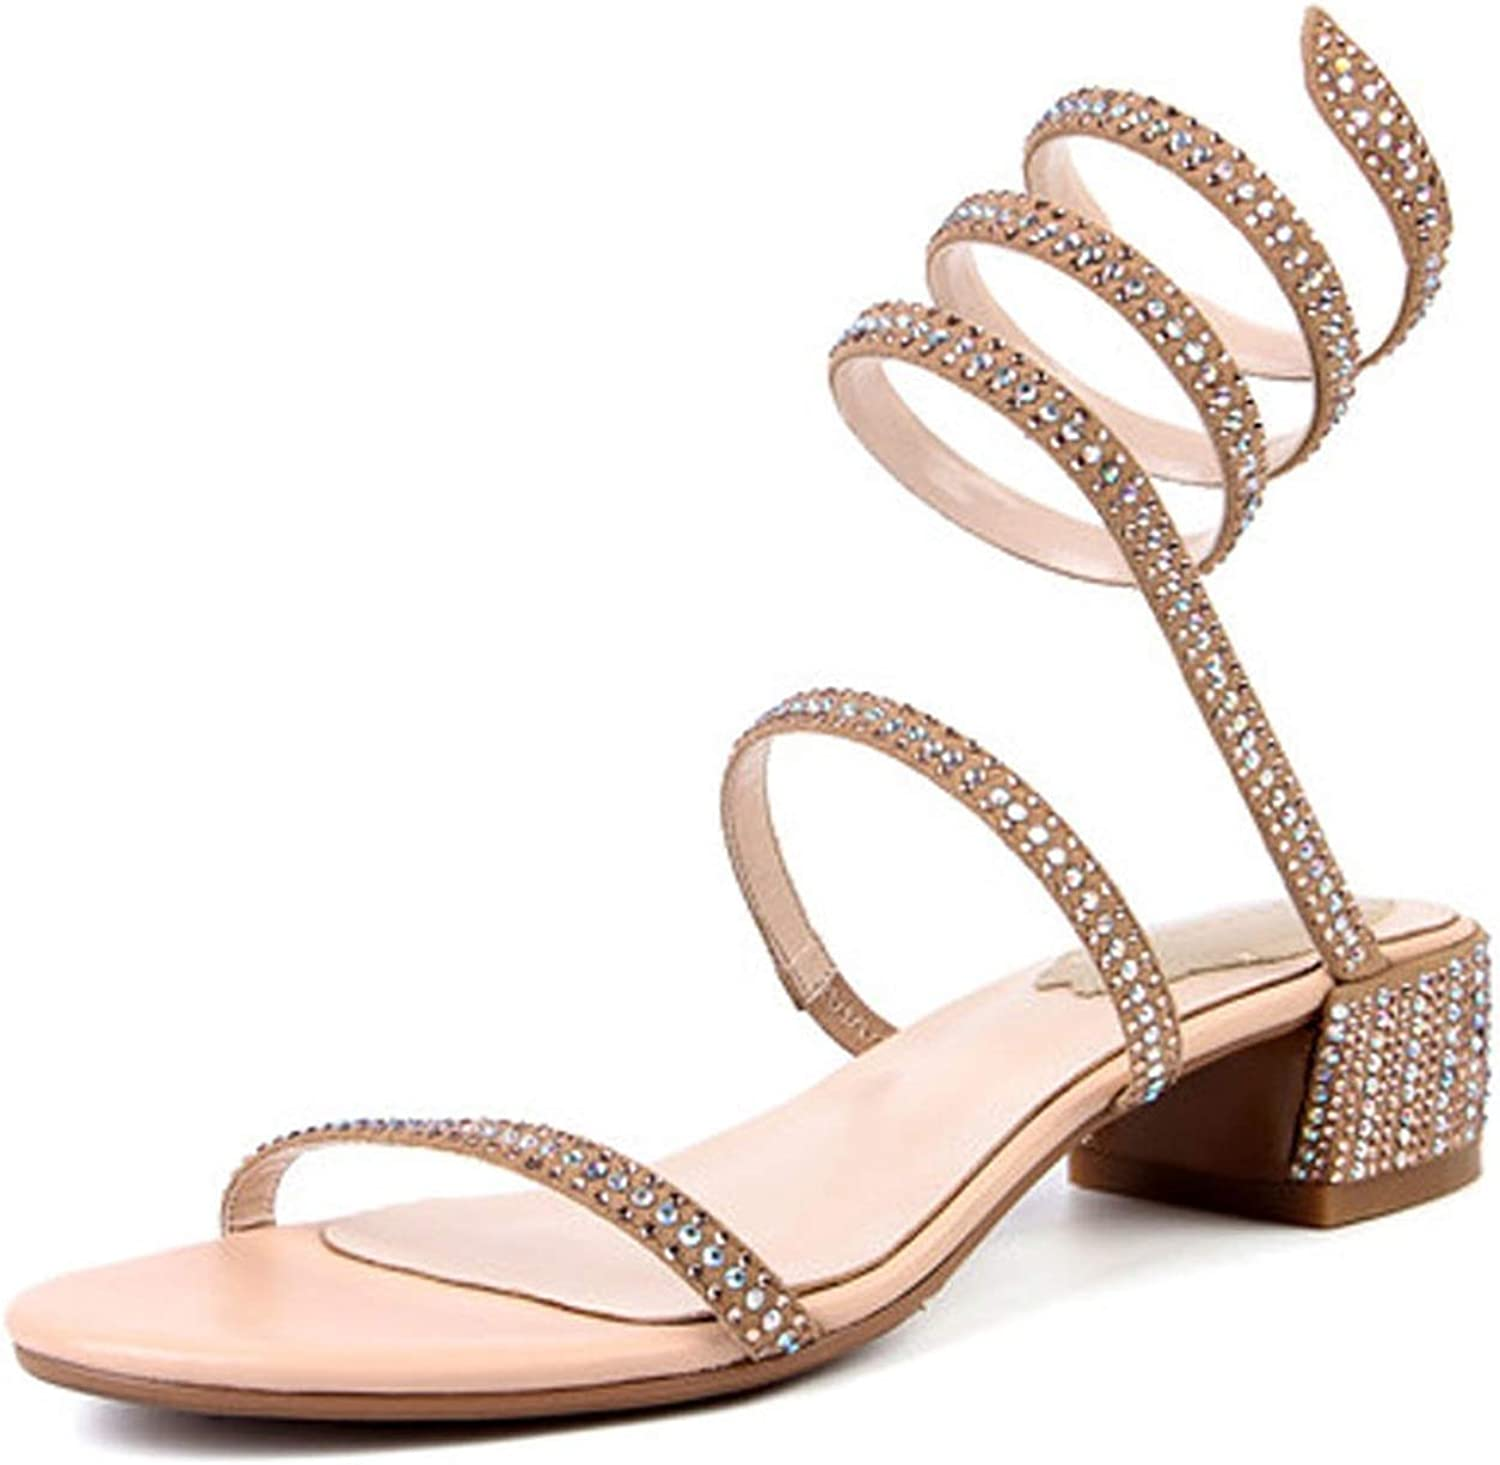 Suede Sandals Women Fashion Snake Strappie Sandals Summer Glitter shoes Sexy Ladies Sandal